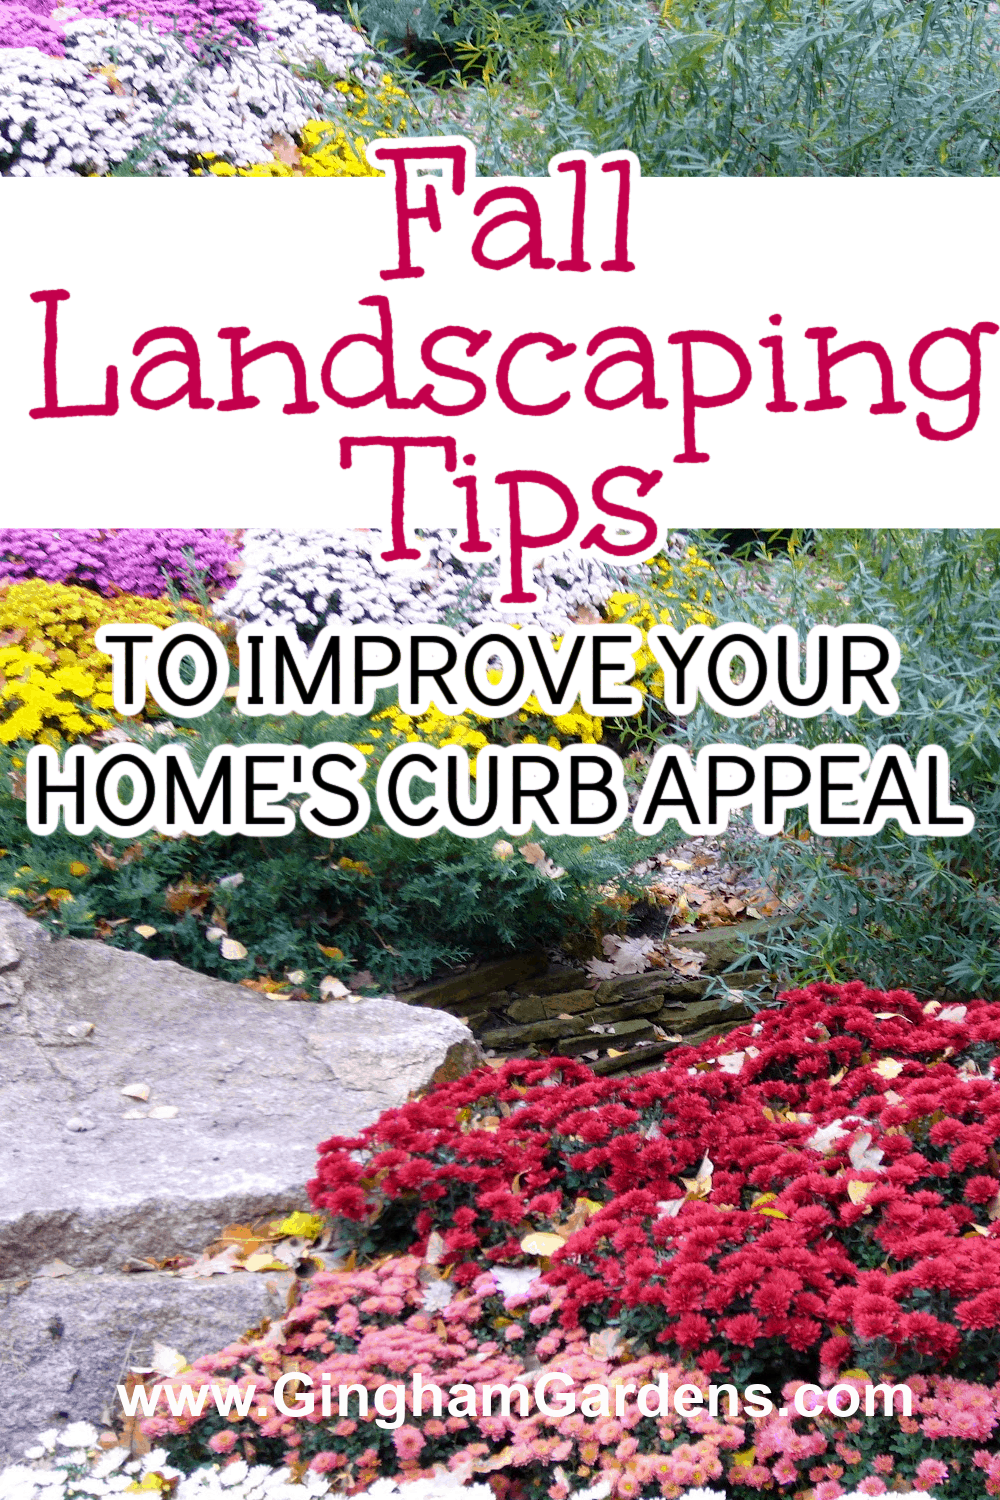 Image of fall landscape with text overlay - Fall Landscaping Tips to Improve Your Home's Curb Appeal